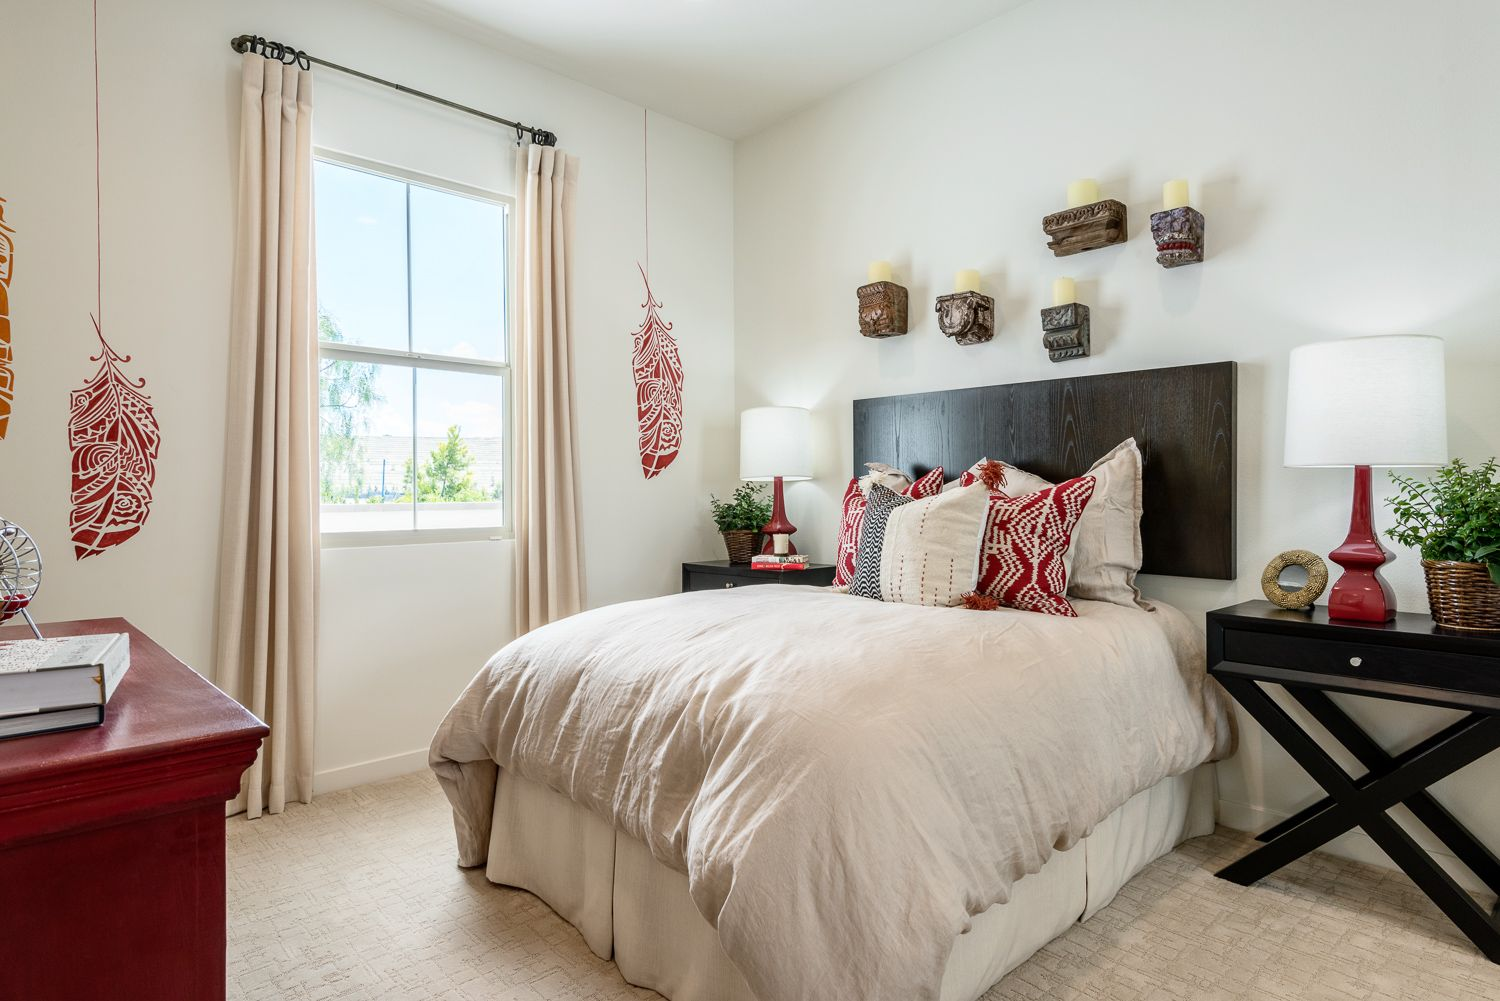 Interior design for double bedroom flat residence two at the vine at portola springs in irvine ca